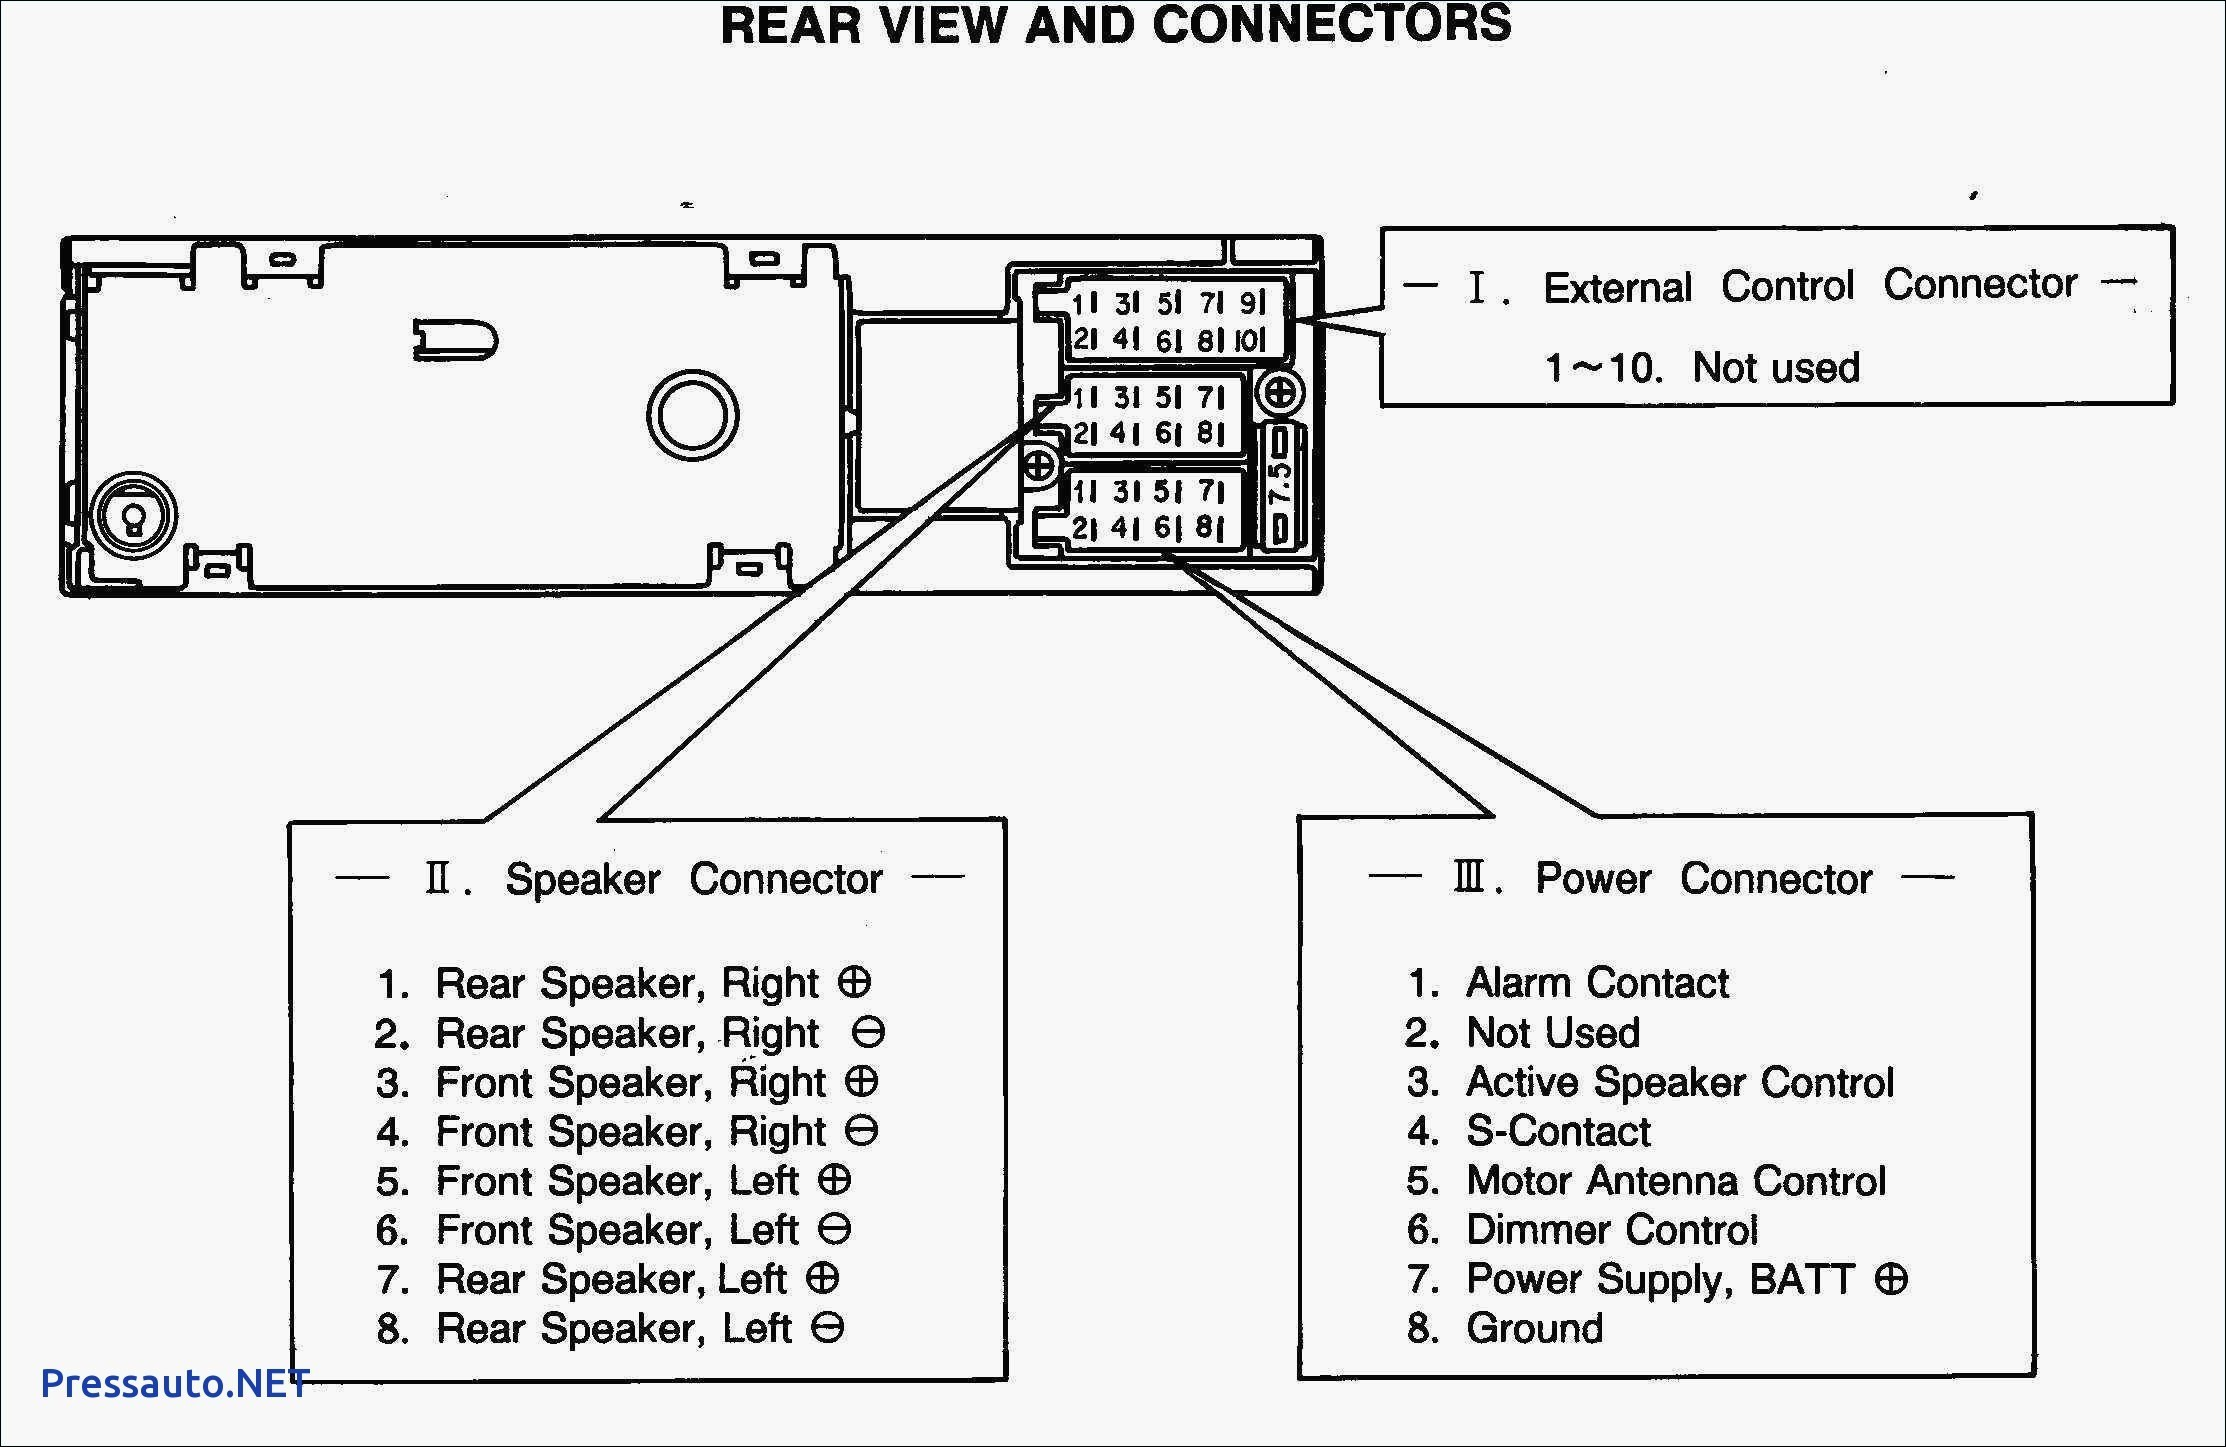 Vw Jetta 1 8 T Engine Diagram Vw Stereo Wiring Harness Another Blog About Wiring Diagram • Of Vw Jetta 1 8 T Engine Diagram